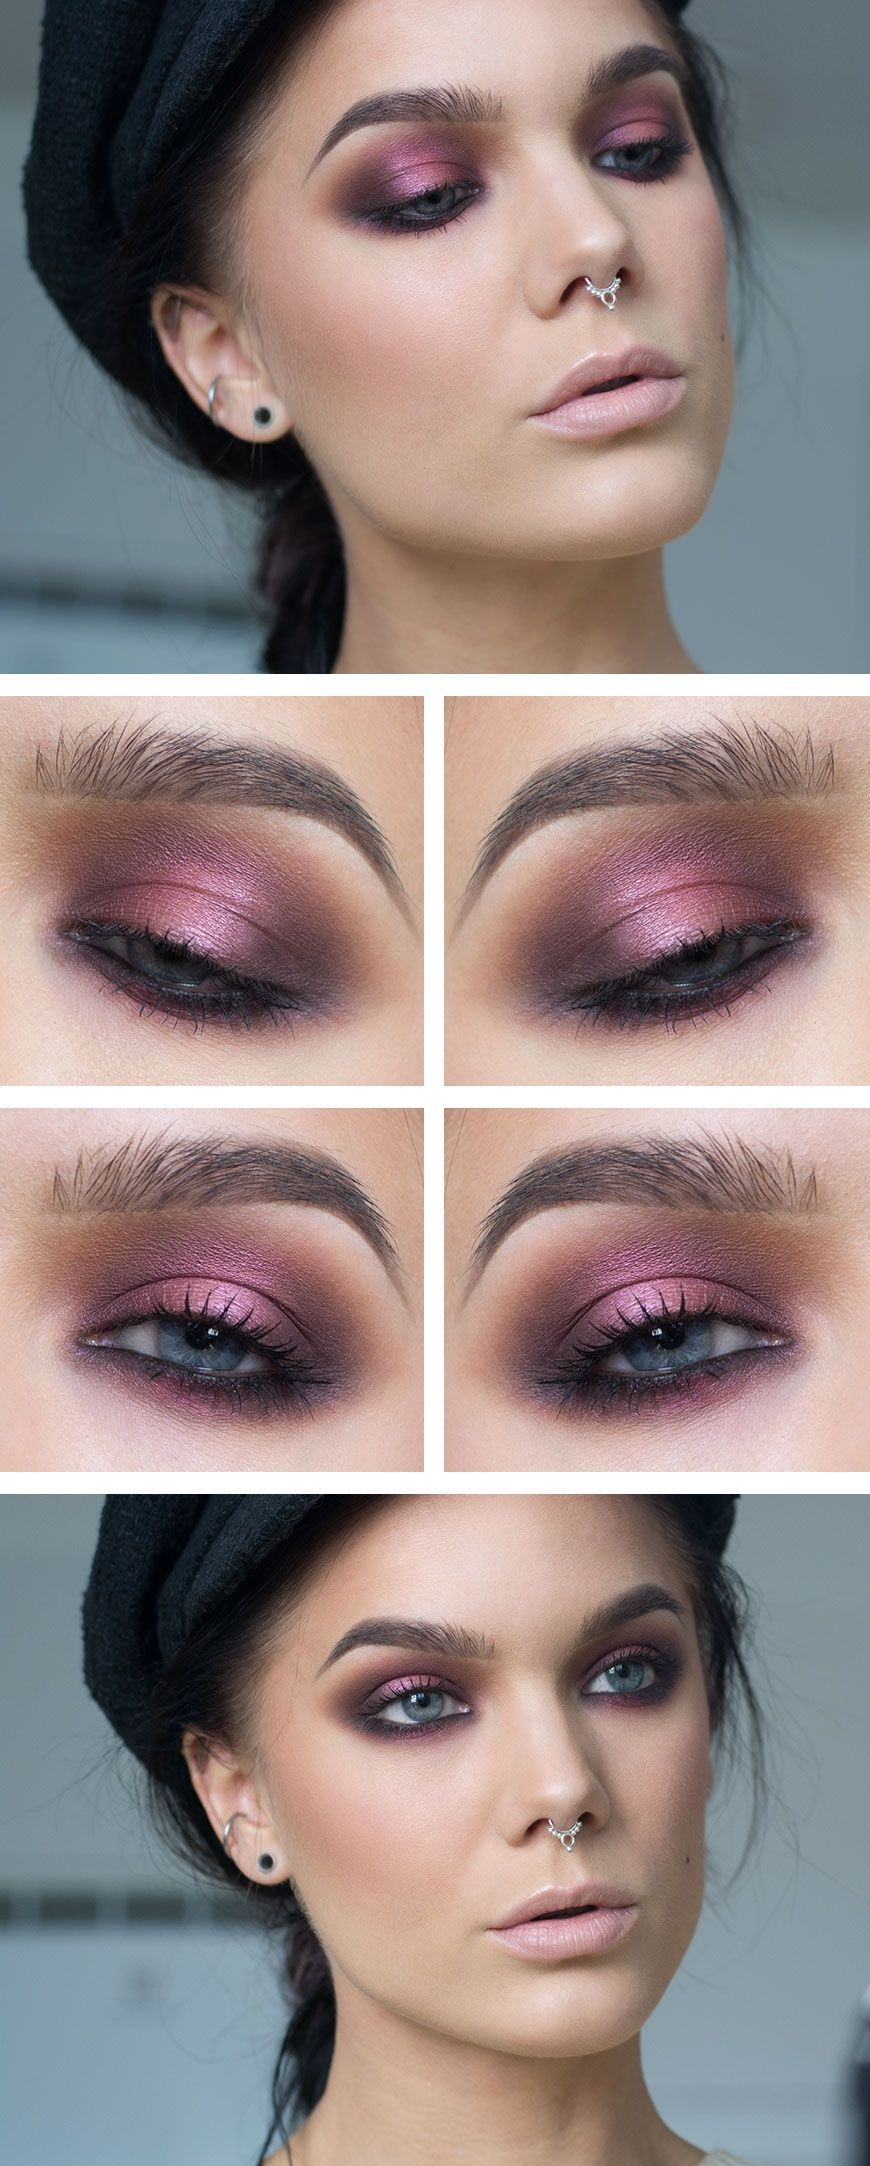 Take Care Of Your Skin With These Simple Steps Makeup